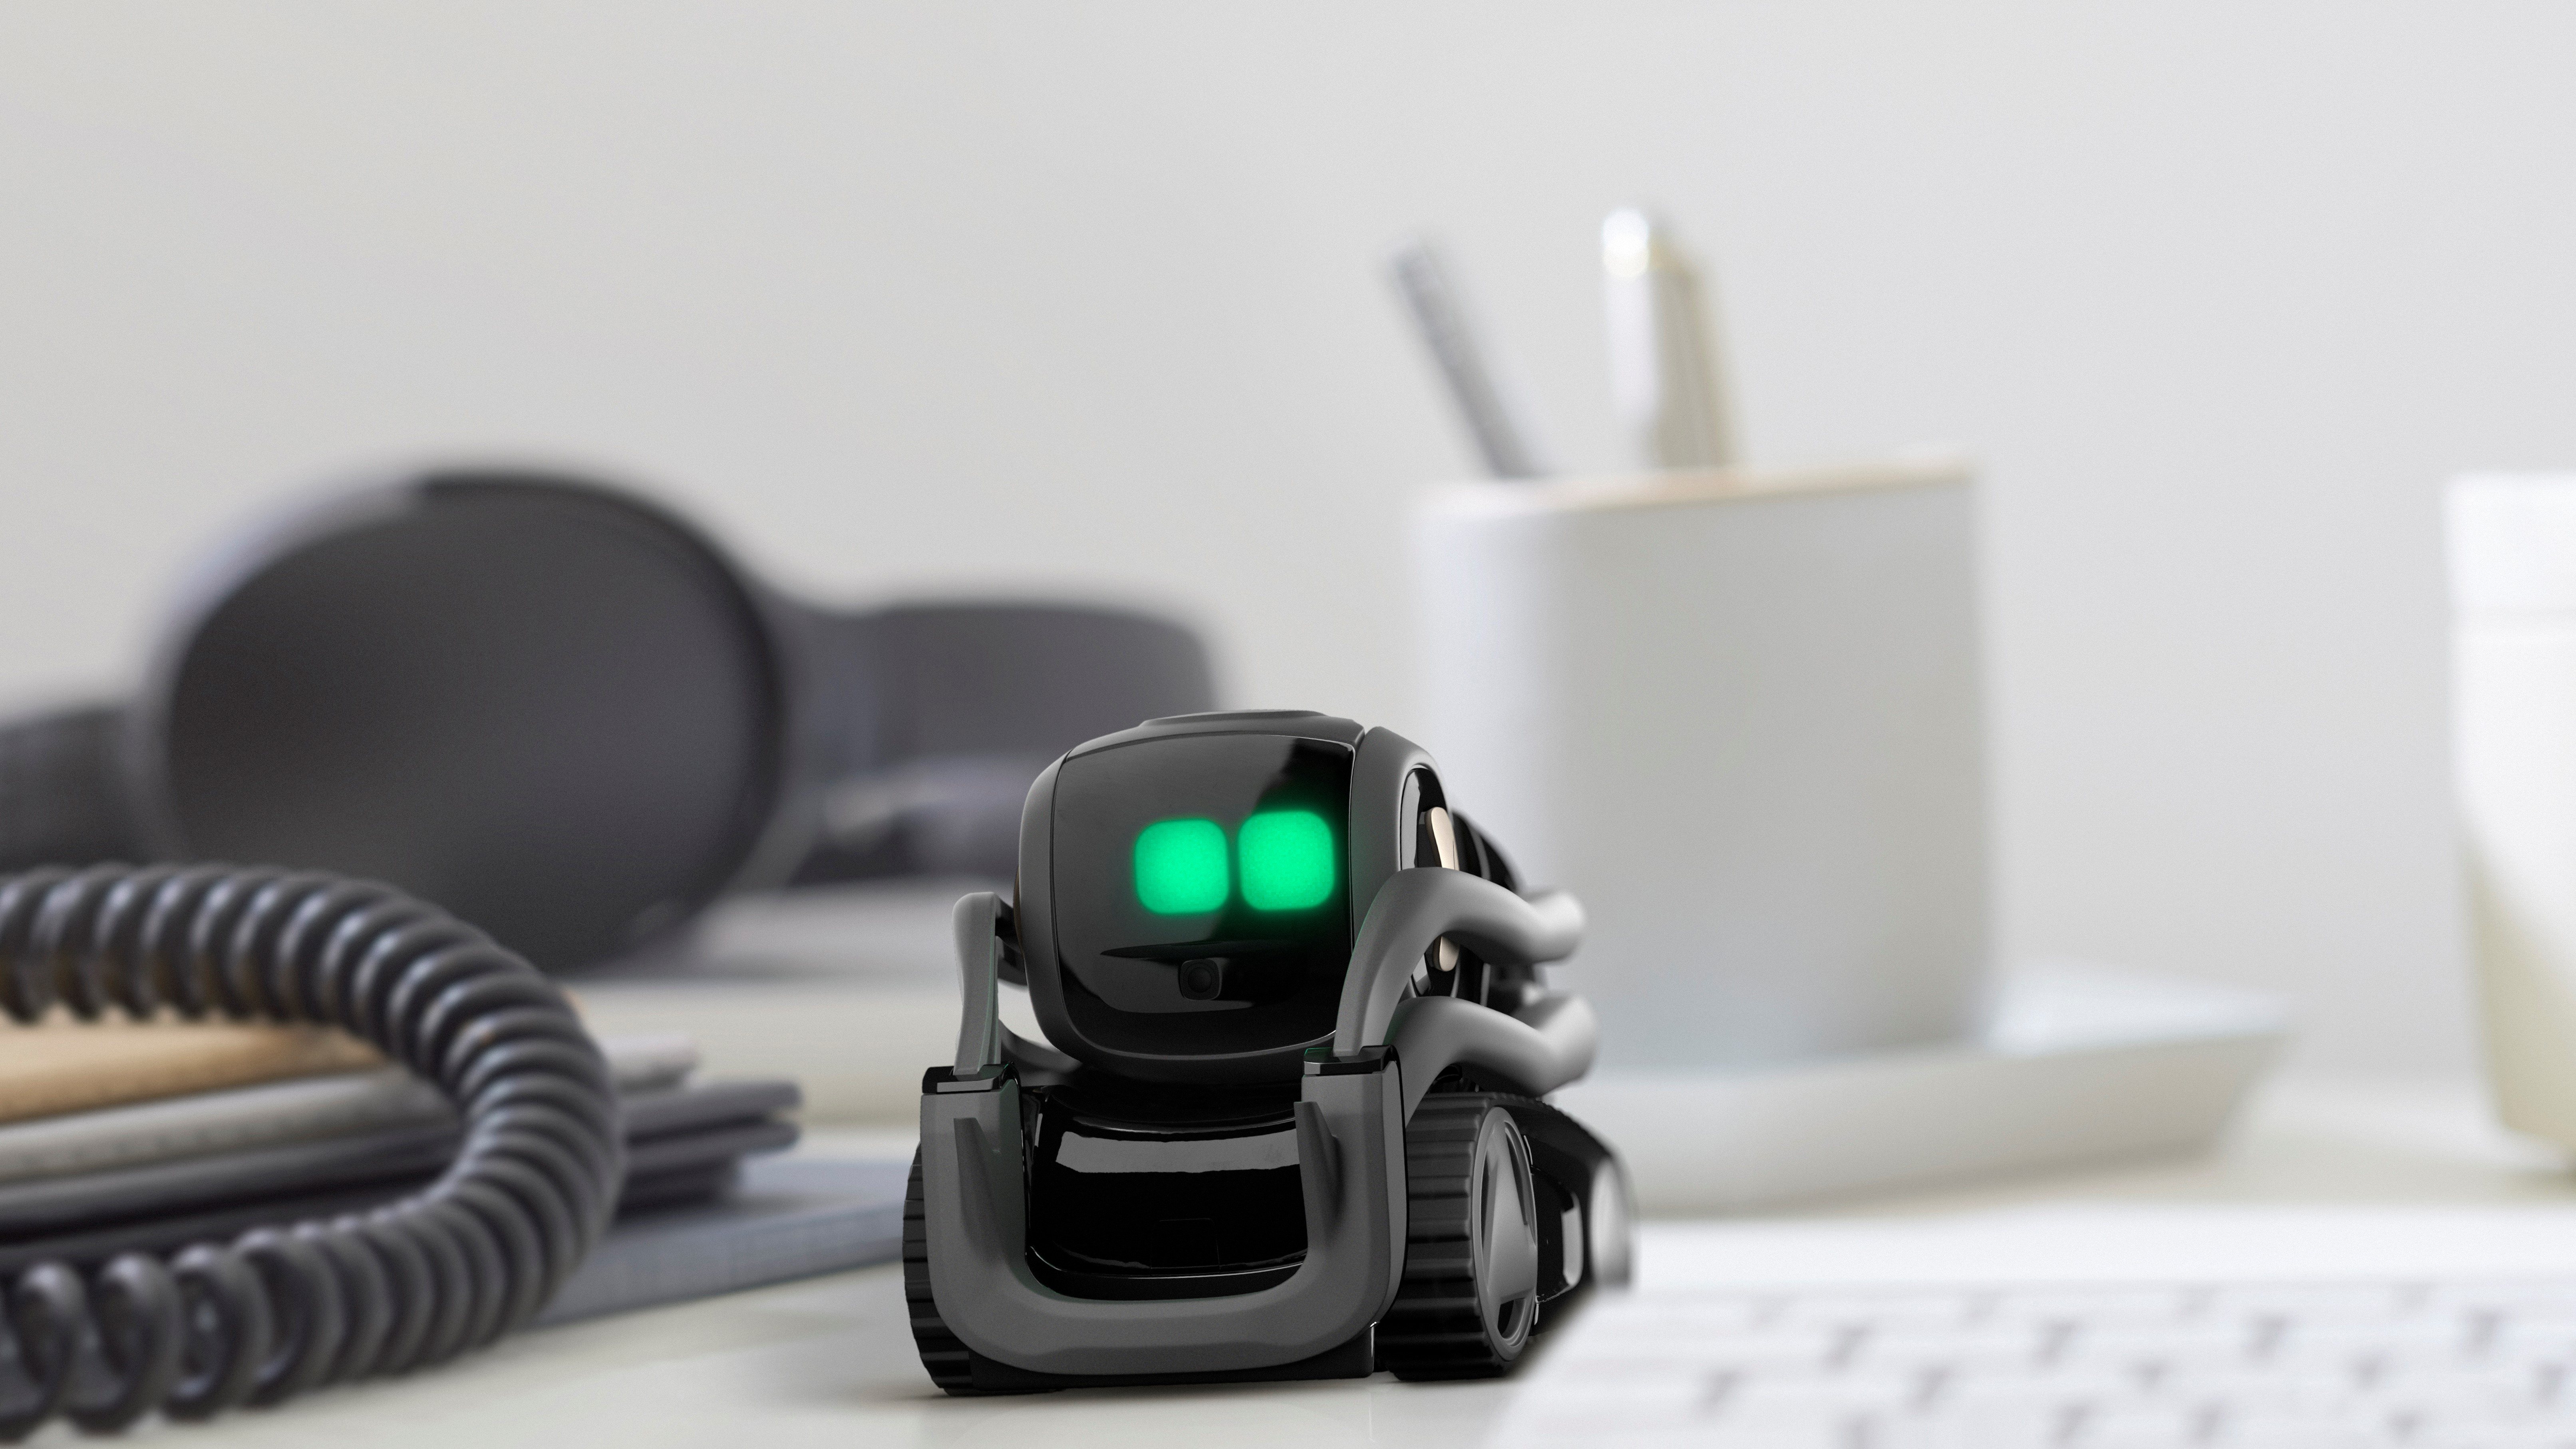 Anki Vector SDK lets you get under the skin of cute home robot